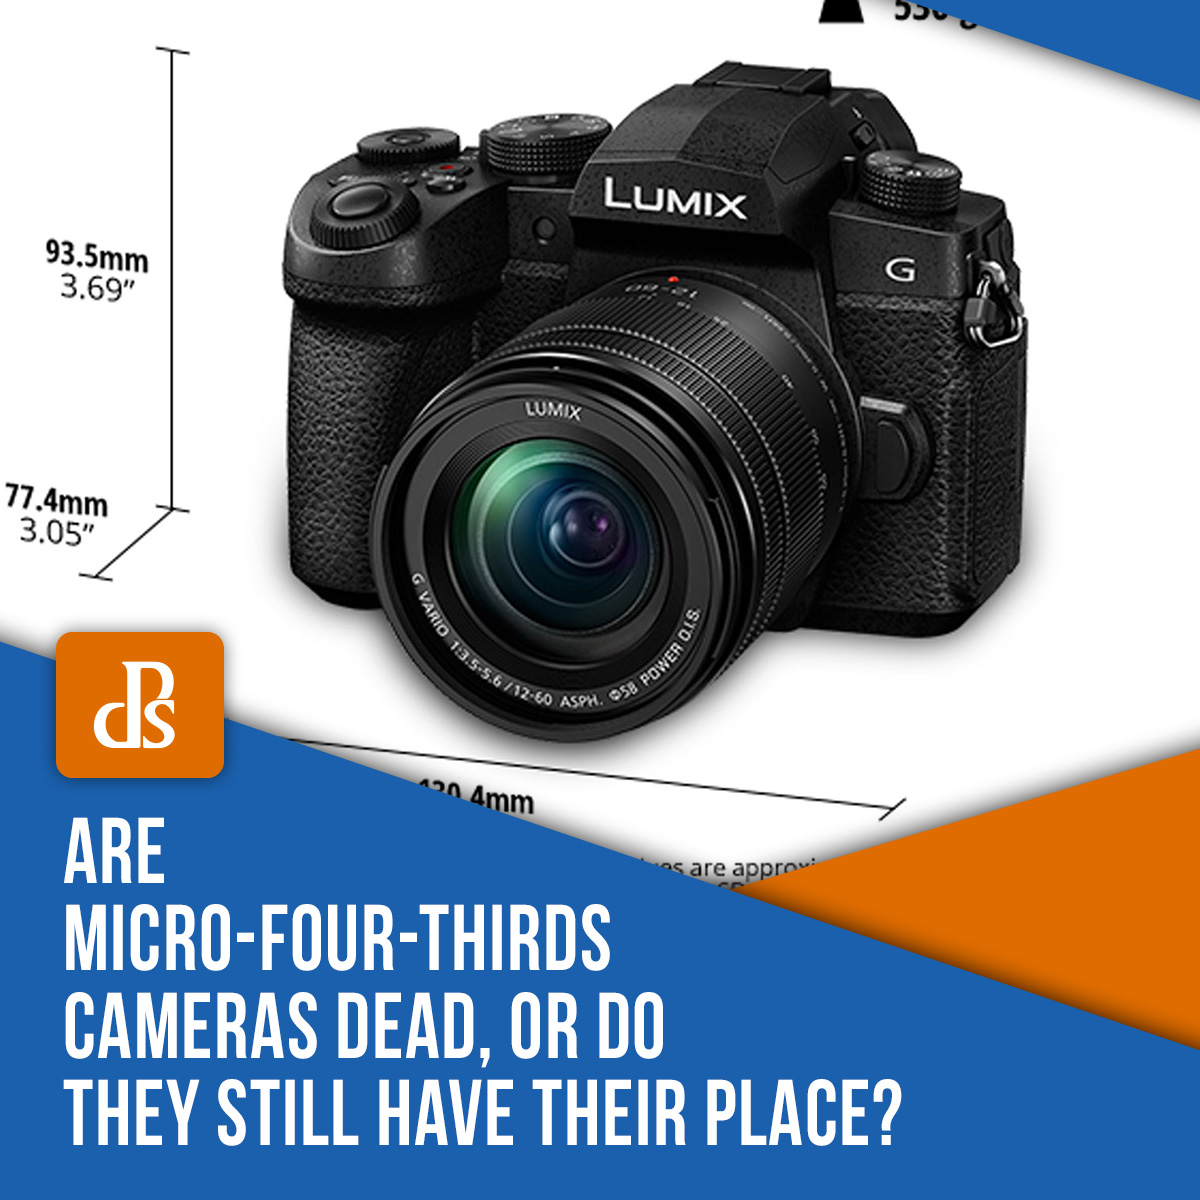 are-micro-four-thirds-cameras-dead